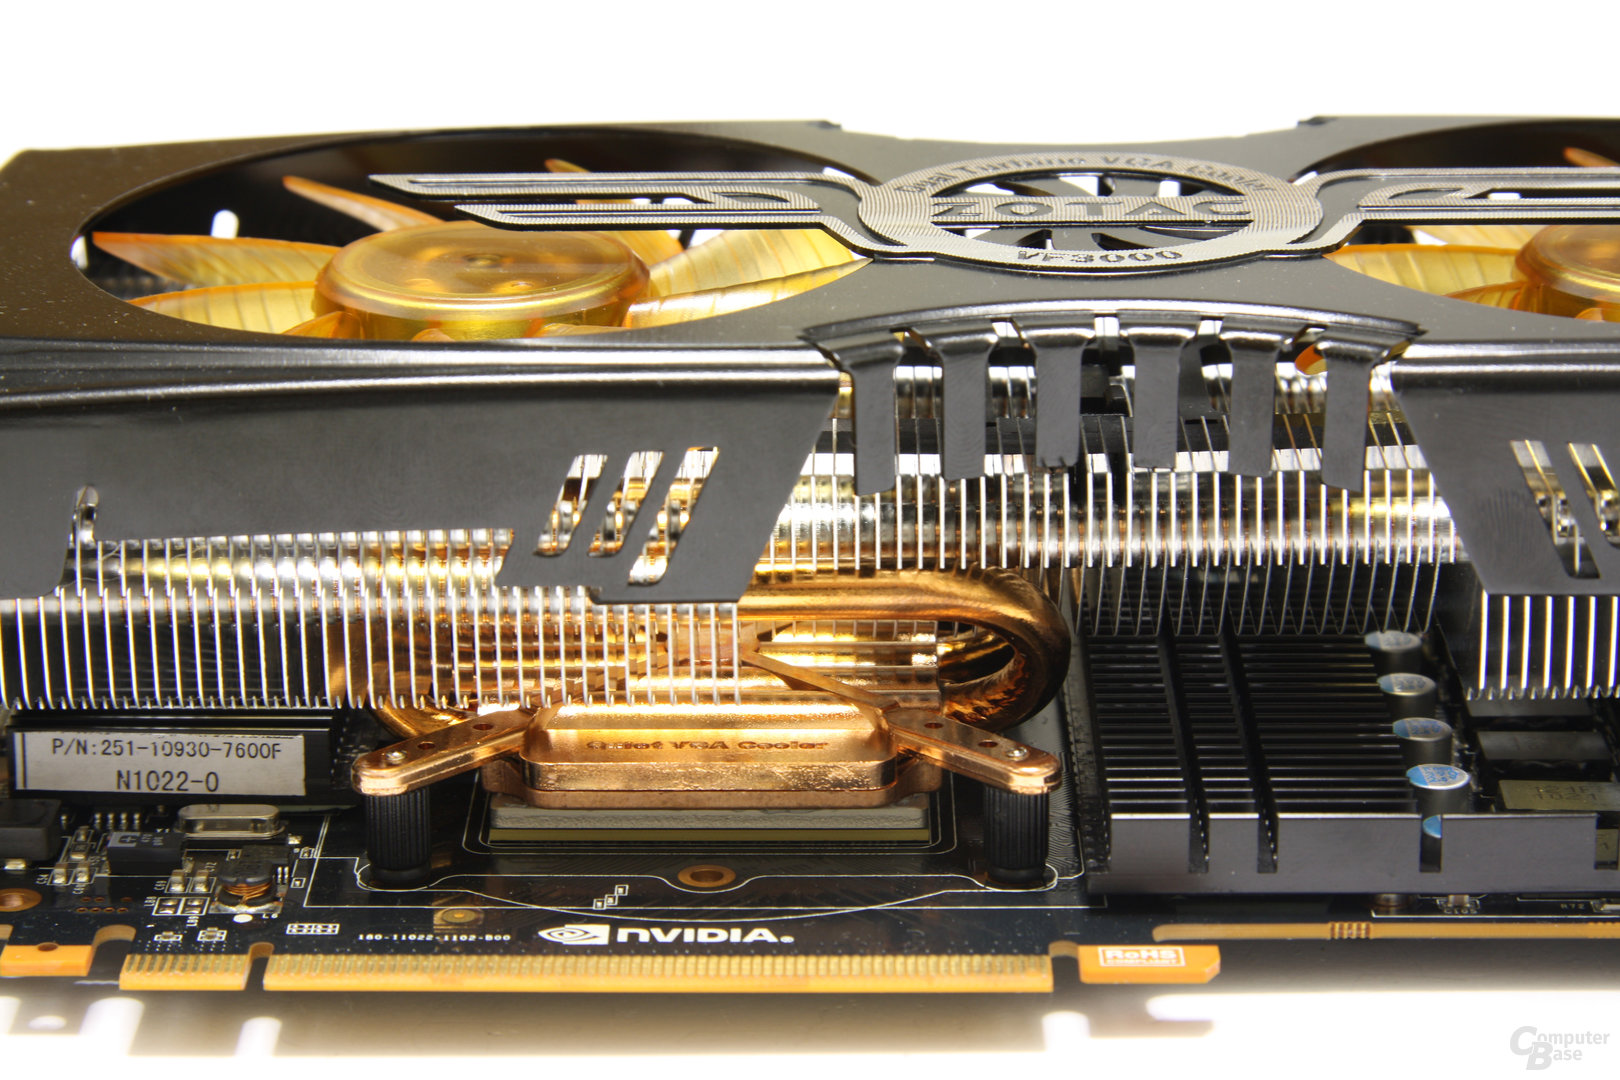 GeForce GTX 480 AMP! Heatpipes